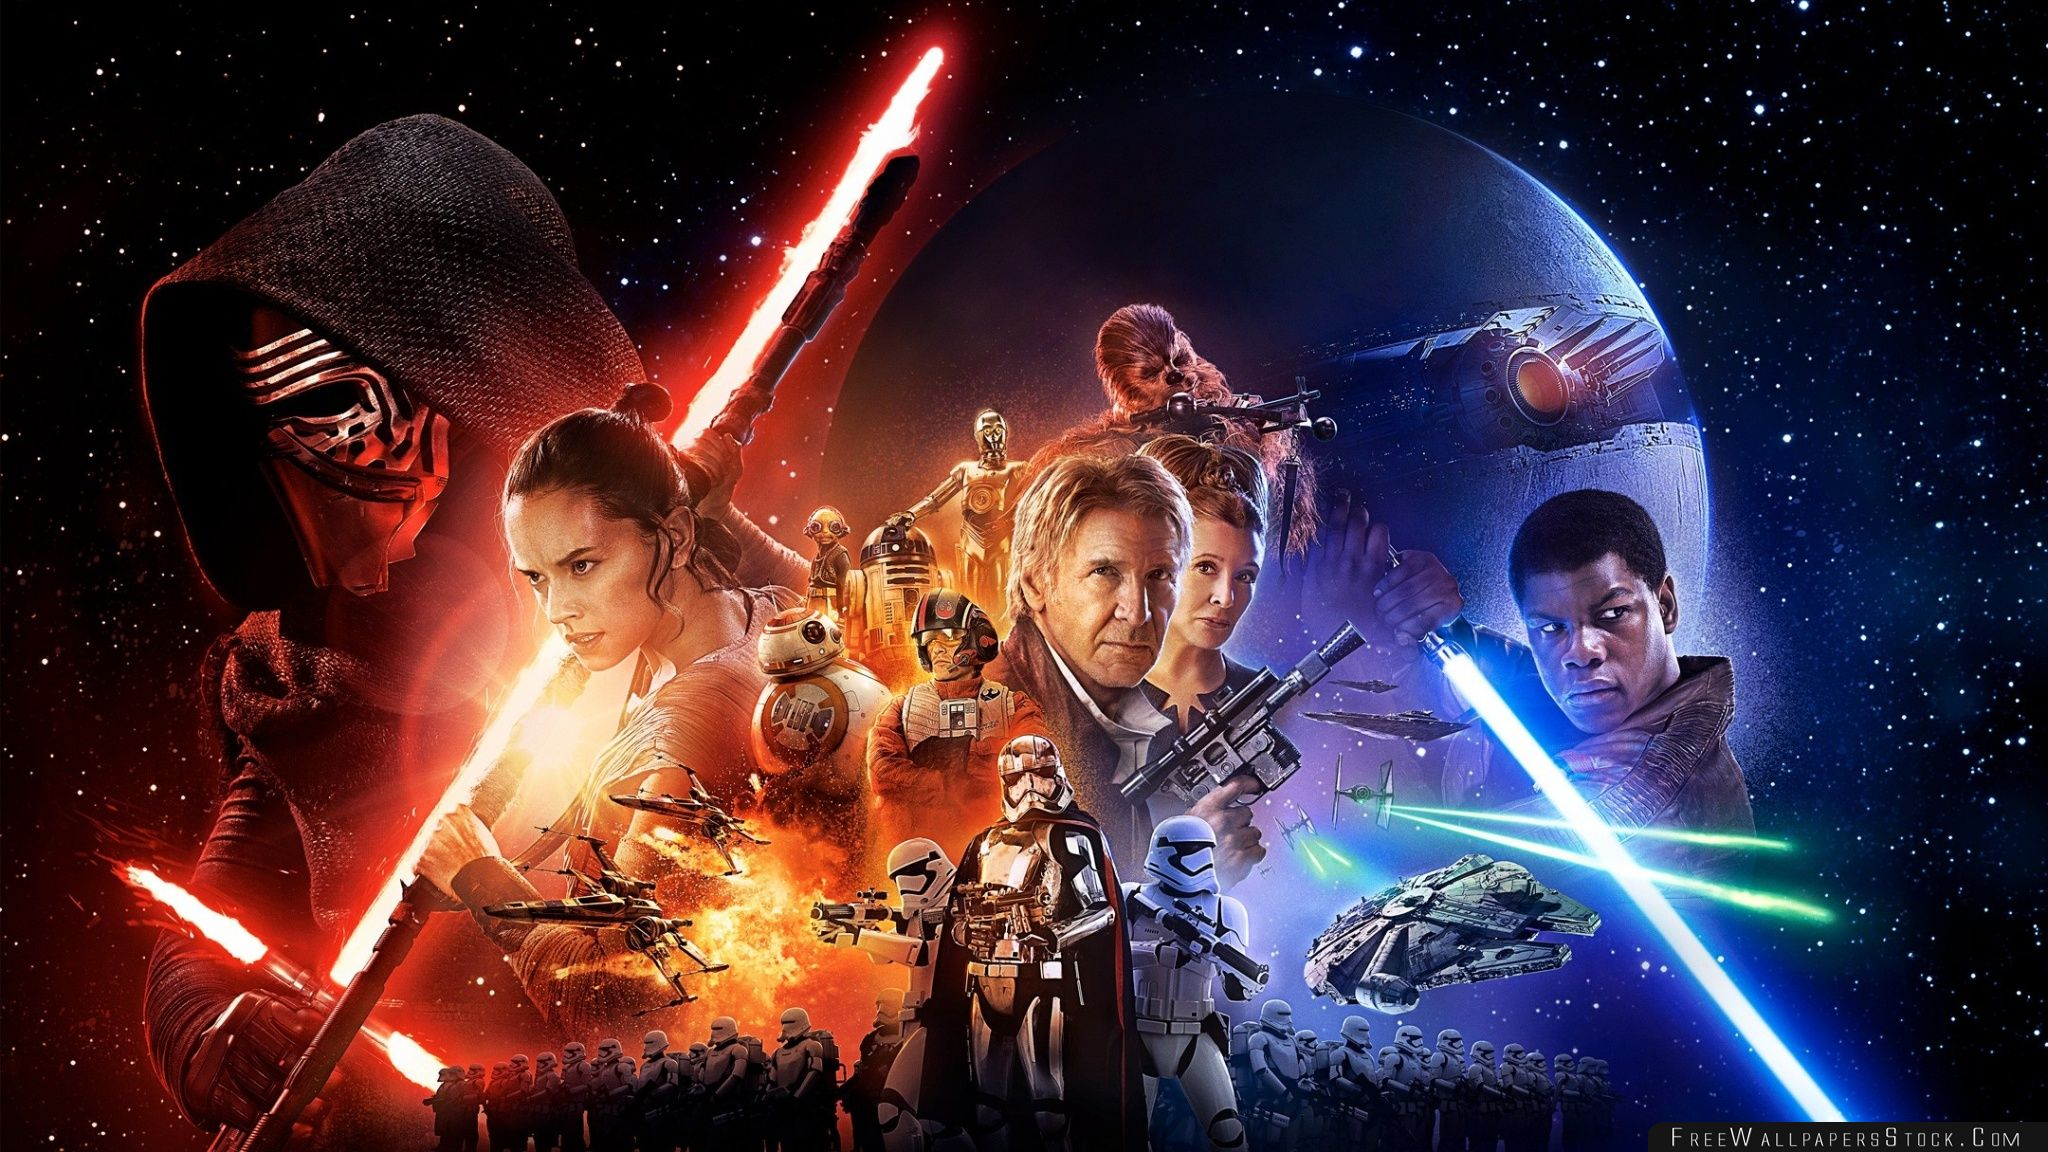 Download Free Wallpaper Star Wars The Force Awakens